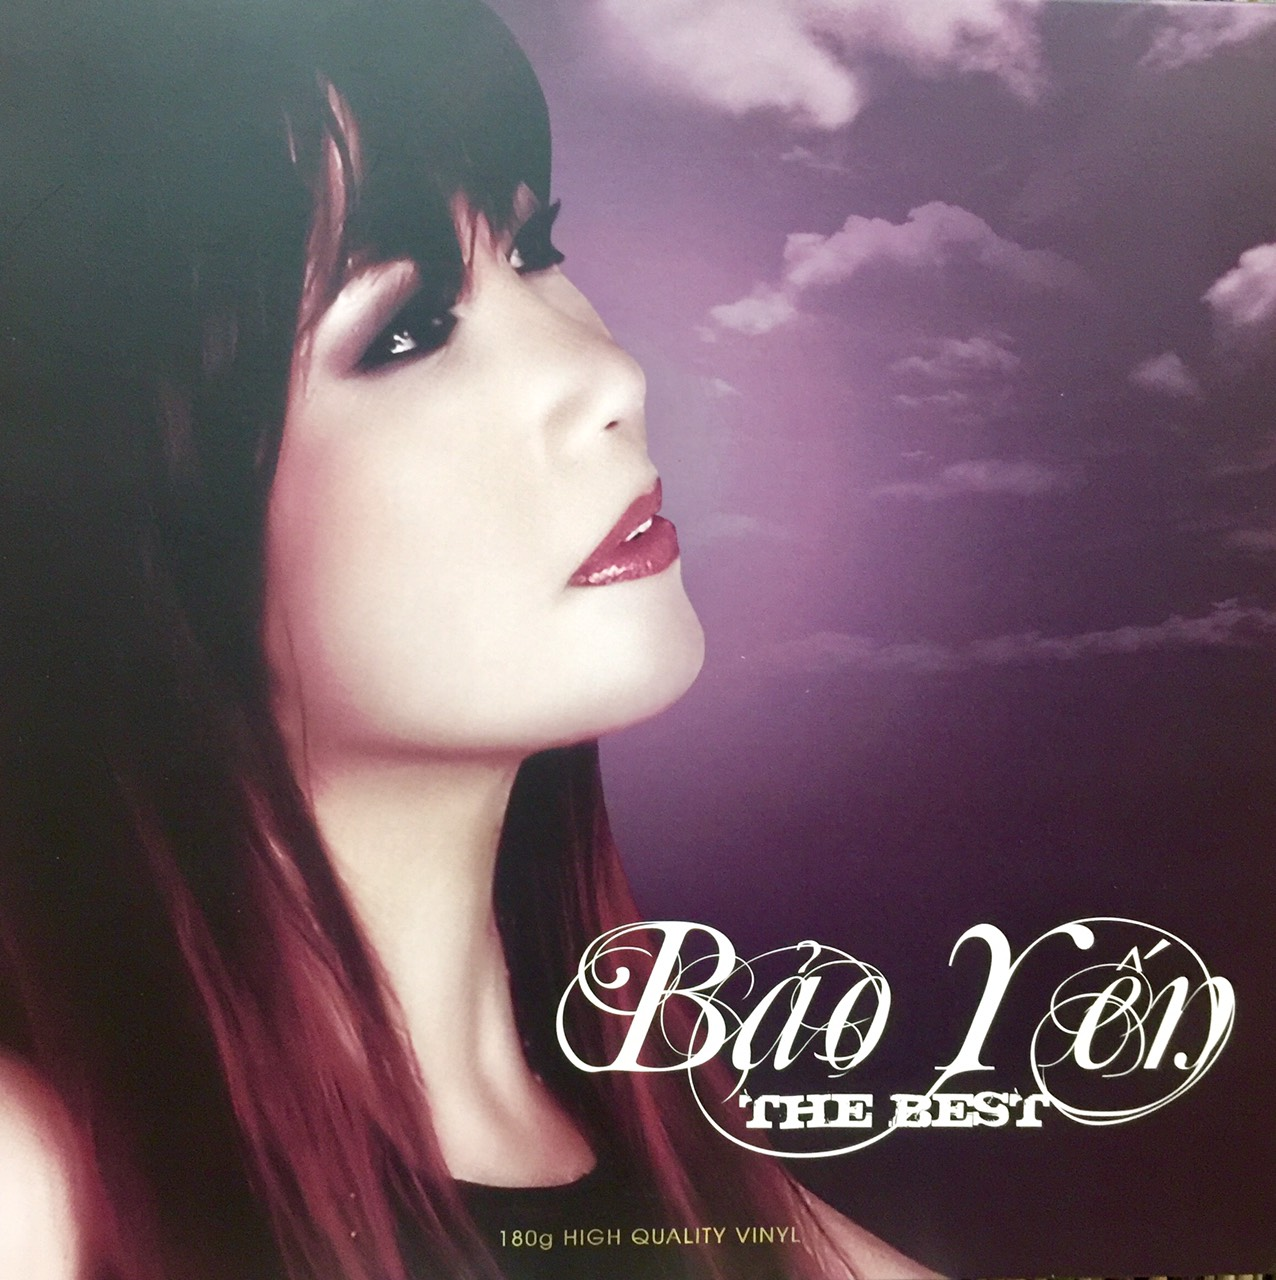 dia-than-bao-yen-the-best